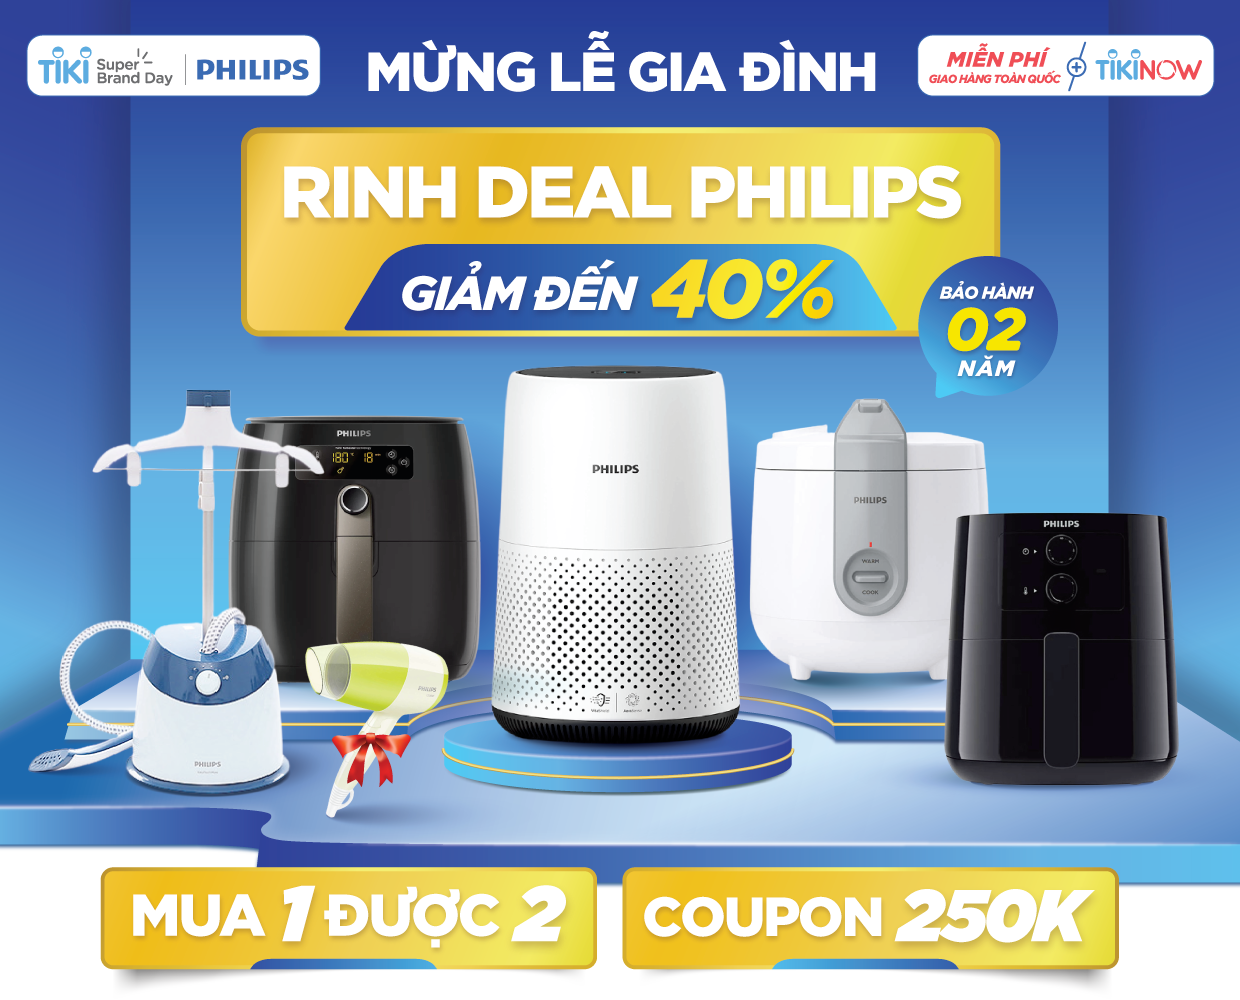 PHILIPS-SBD-4.png